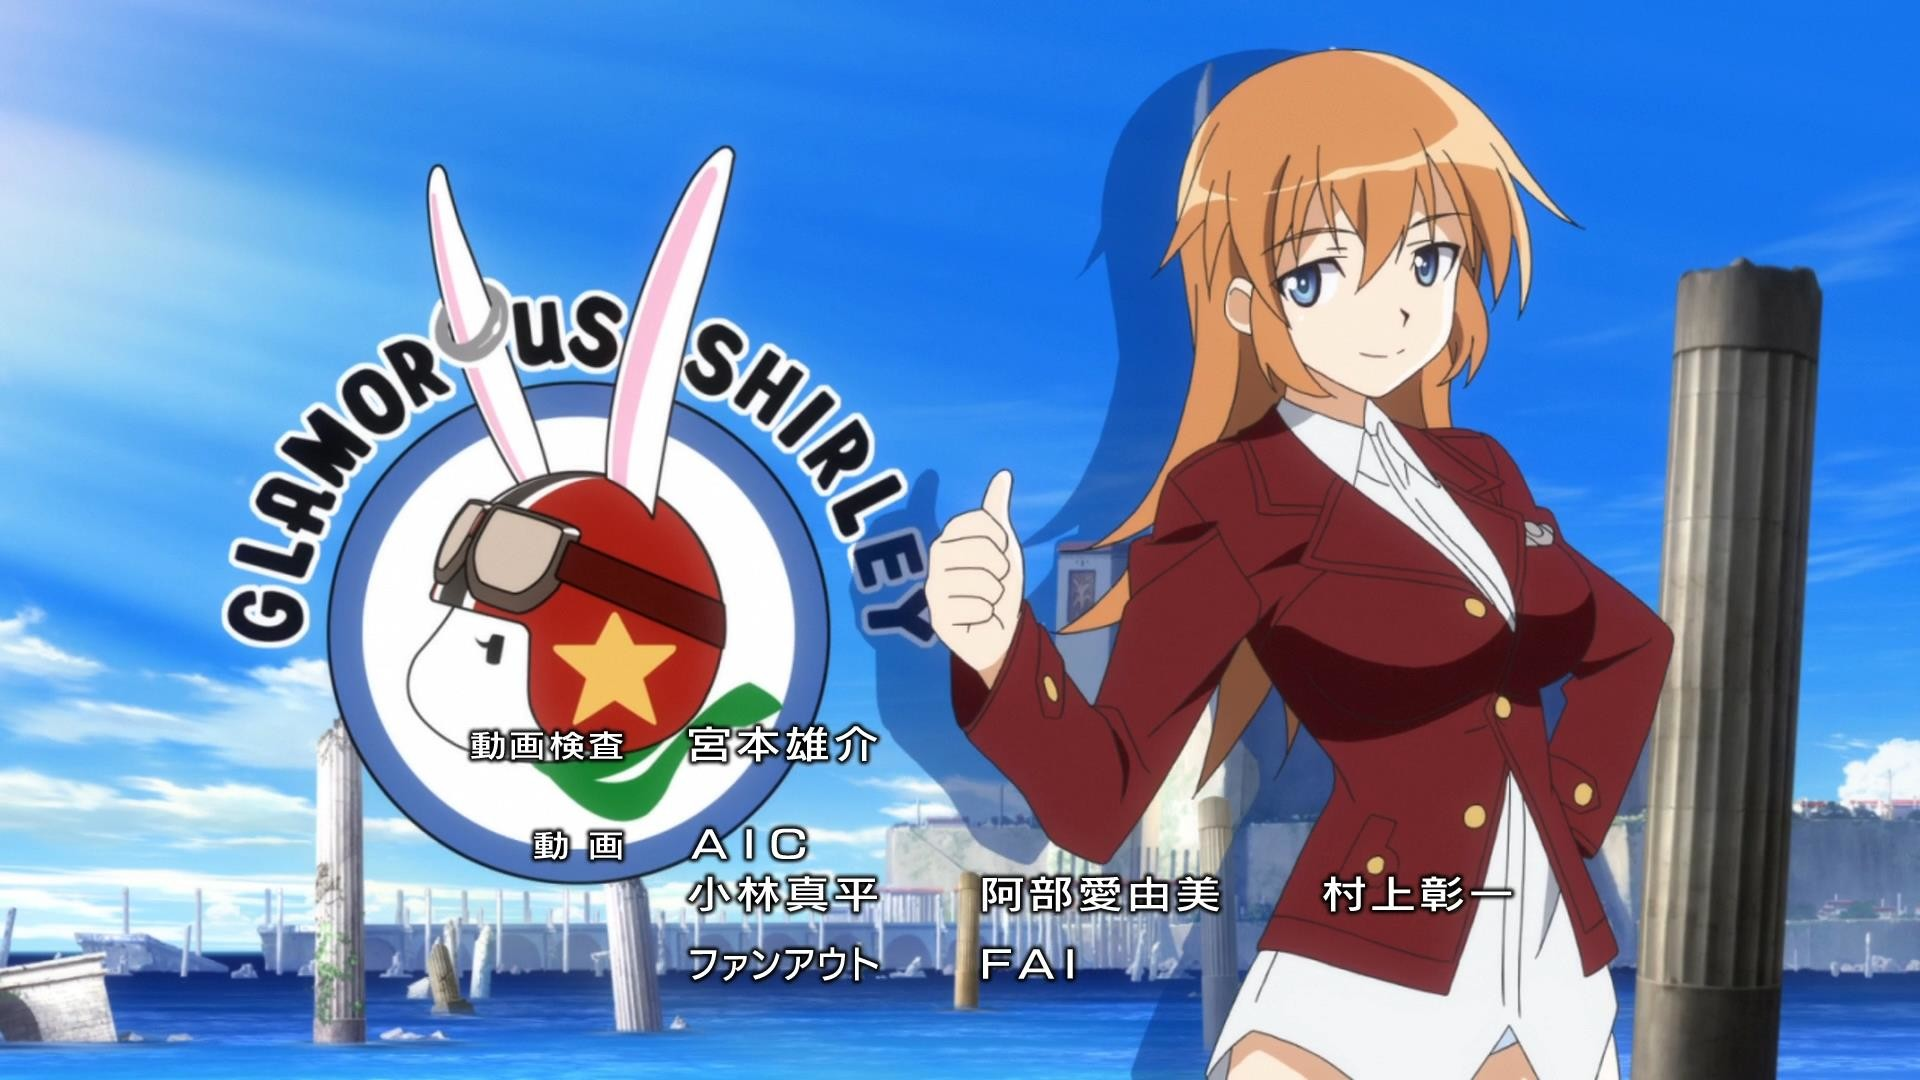 1920x1080 ...  , [Kira-Fansub] Strike Witches 2-ki - 11 (BD 1920x10.jpg )